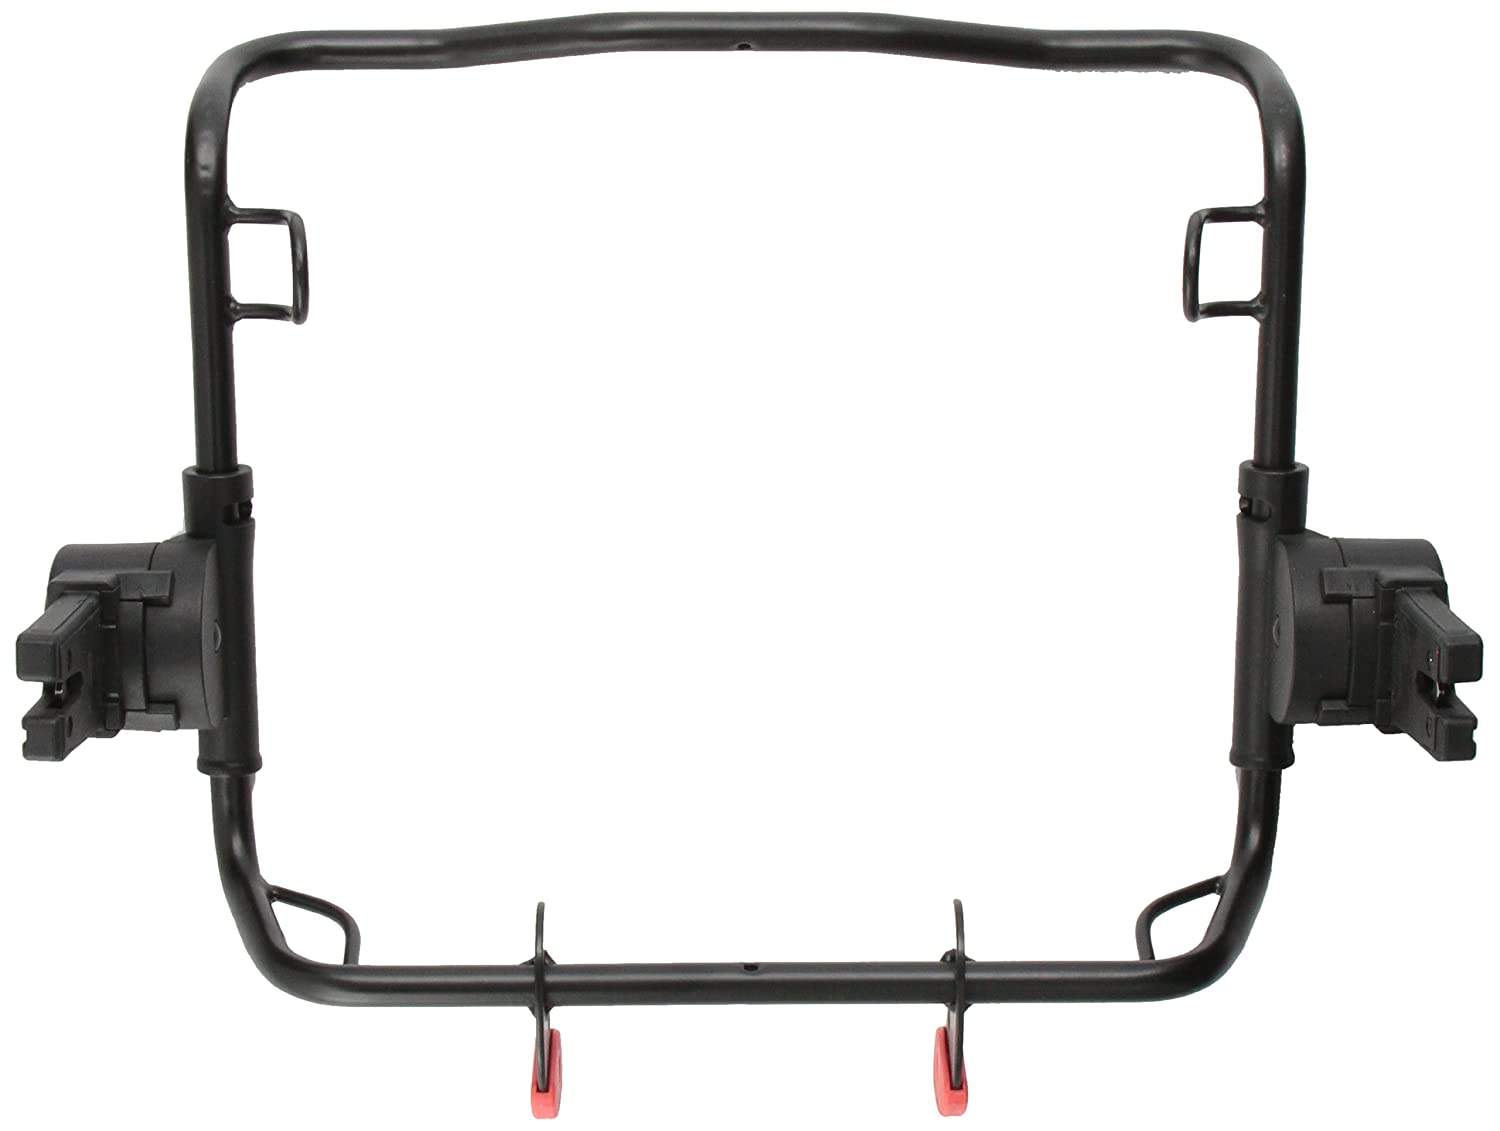 phil/&teds Car Seat Adapter for Graco Snugride fits Promenade